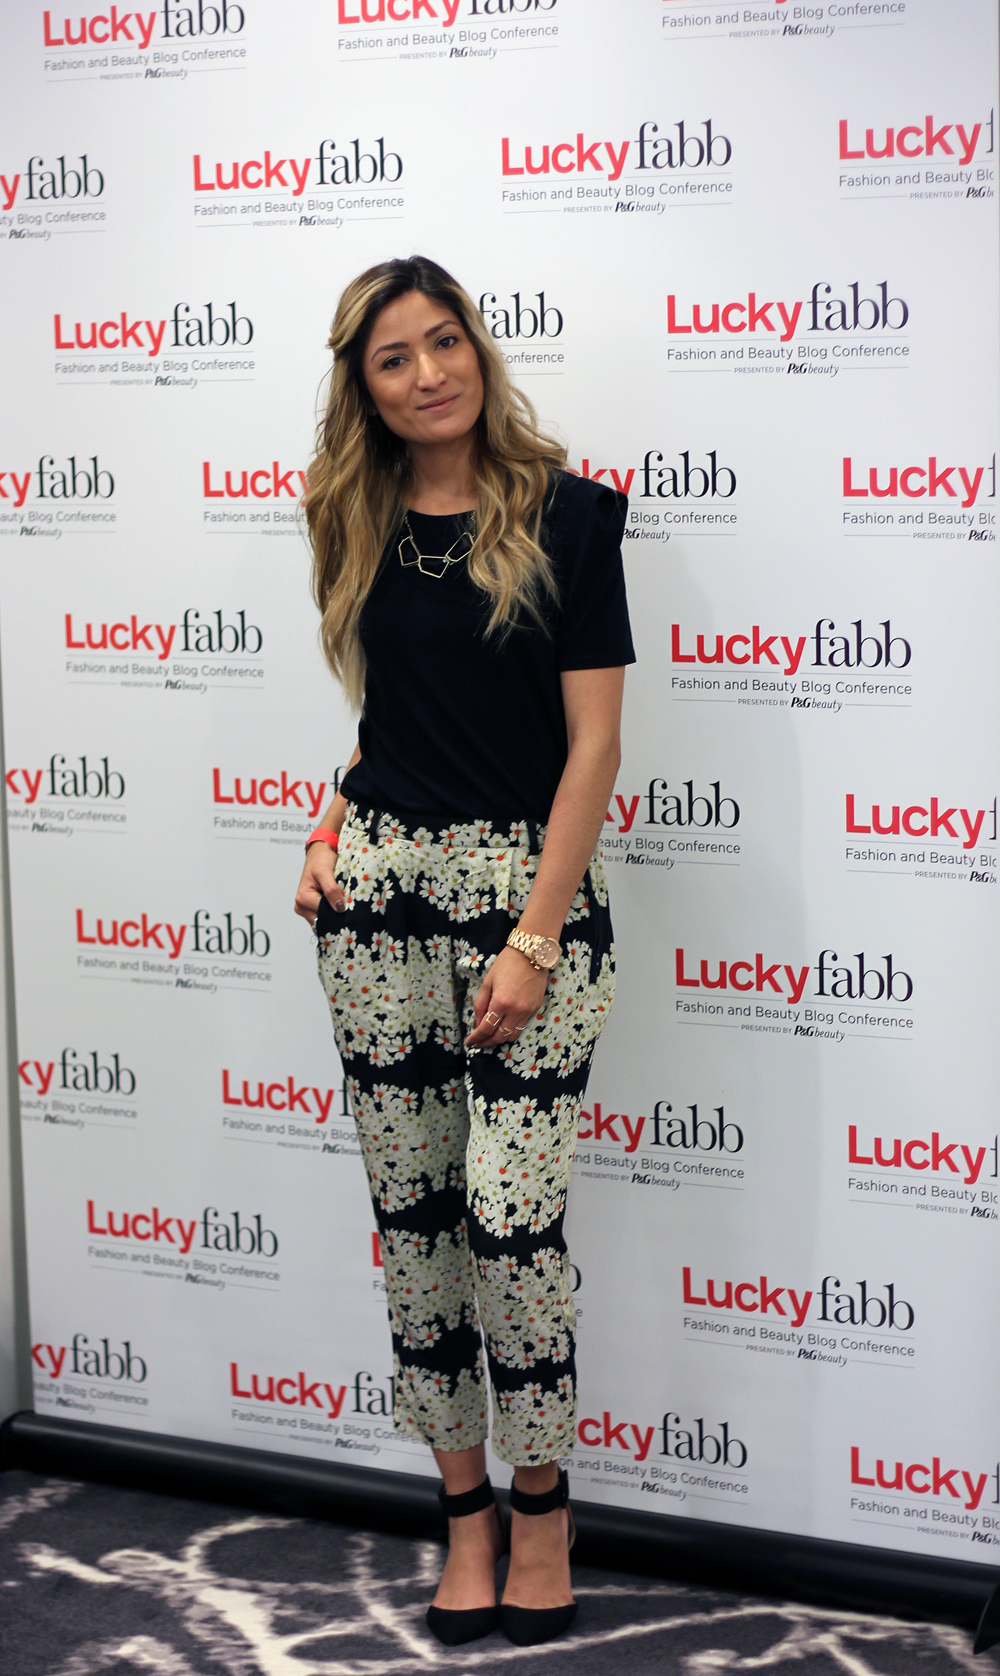 Lucky Fabb, Outfit, What I Wore, Trending, Floral, Flower, Pants, OOTD, Street Style, Fashion Blogger, LA Fashion Blogger, Lucky Magazine